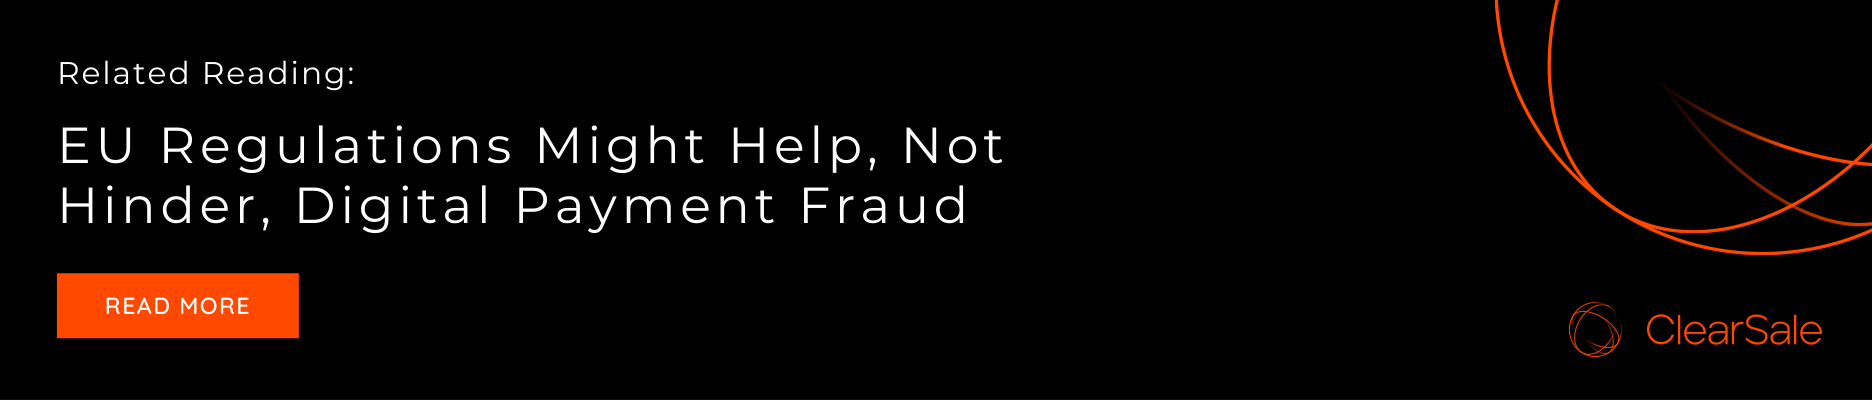 Related reading: EU regulations might help, not hinder, digital payment fraud